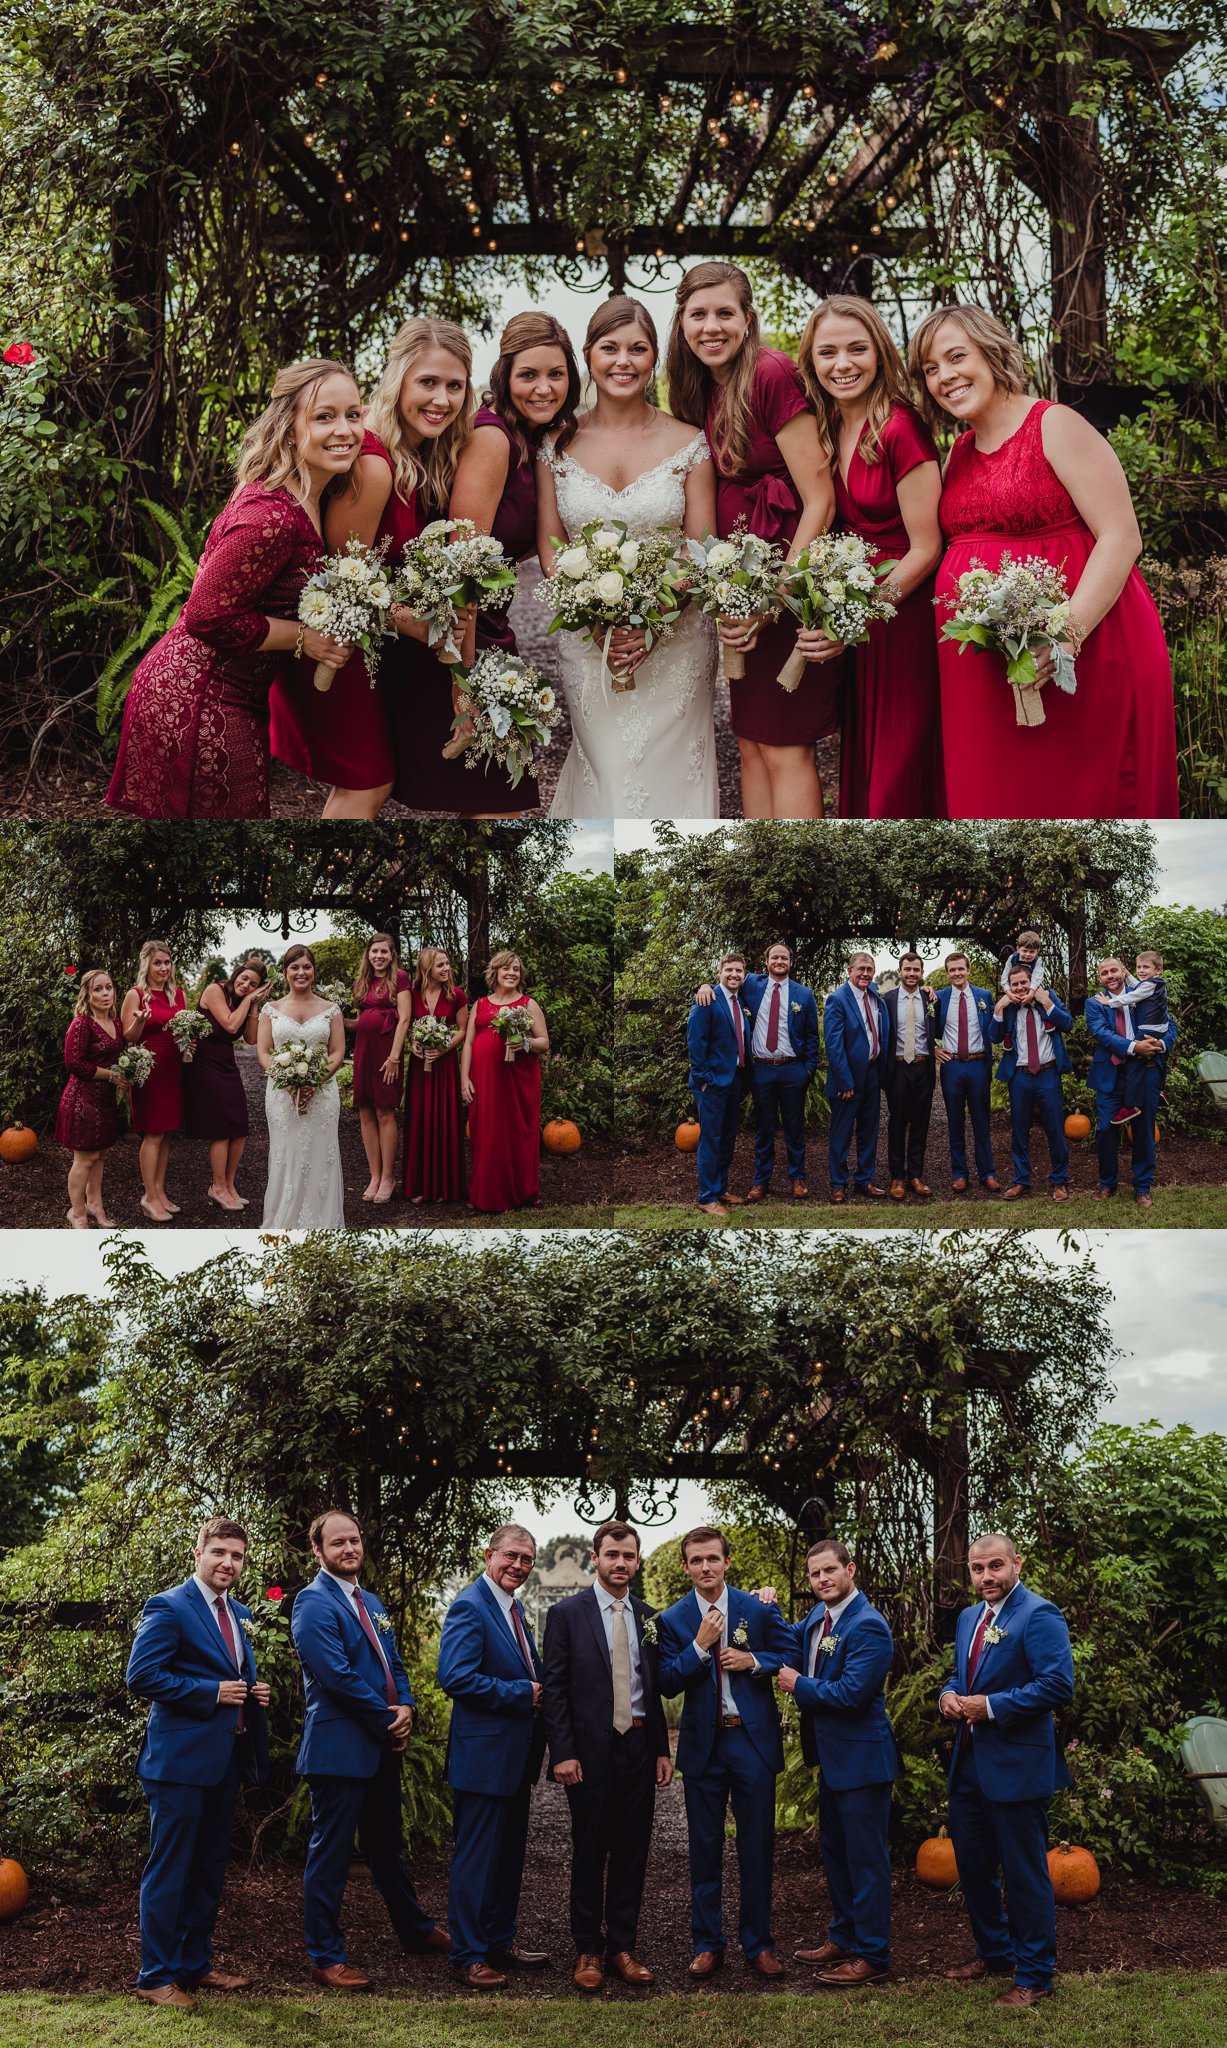 The bridal party takes fun pictures before the wedding reception at the Little Herb House in Raleigh, North Carolina. Photos by Rose Trail Images.